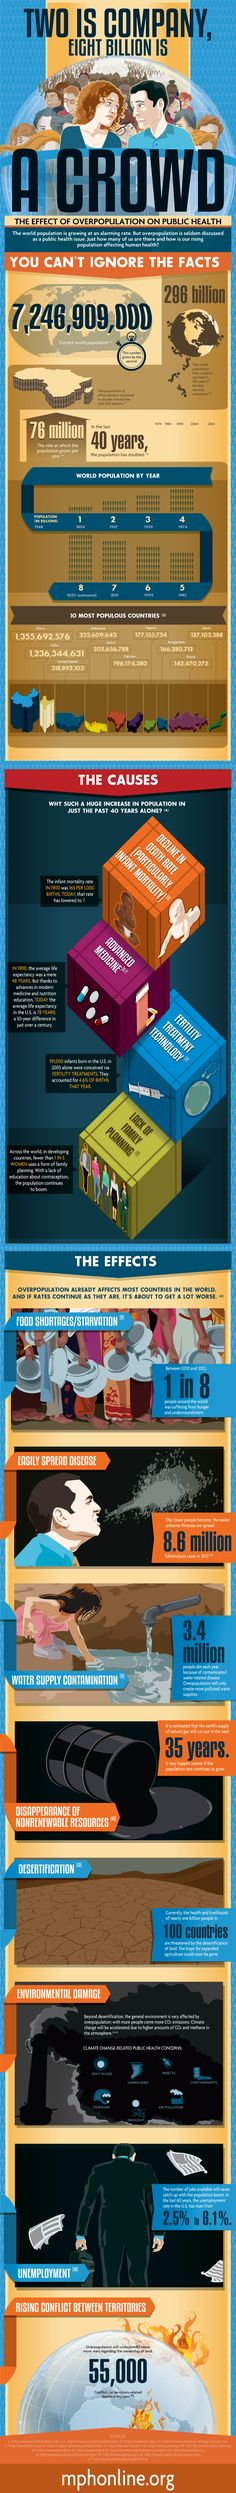 Fascinating infographic shows Effect of Overpopulation on Public Health